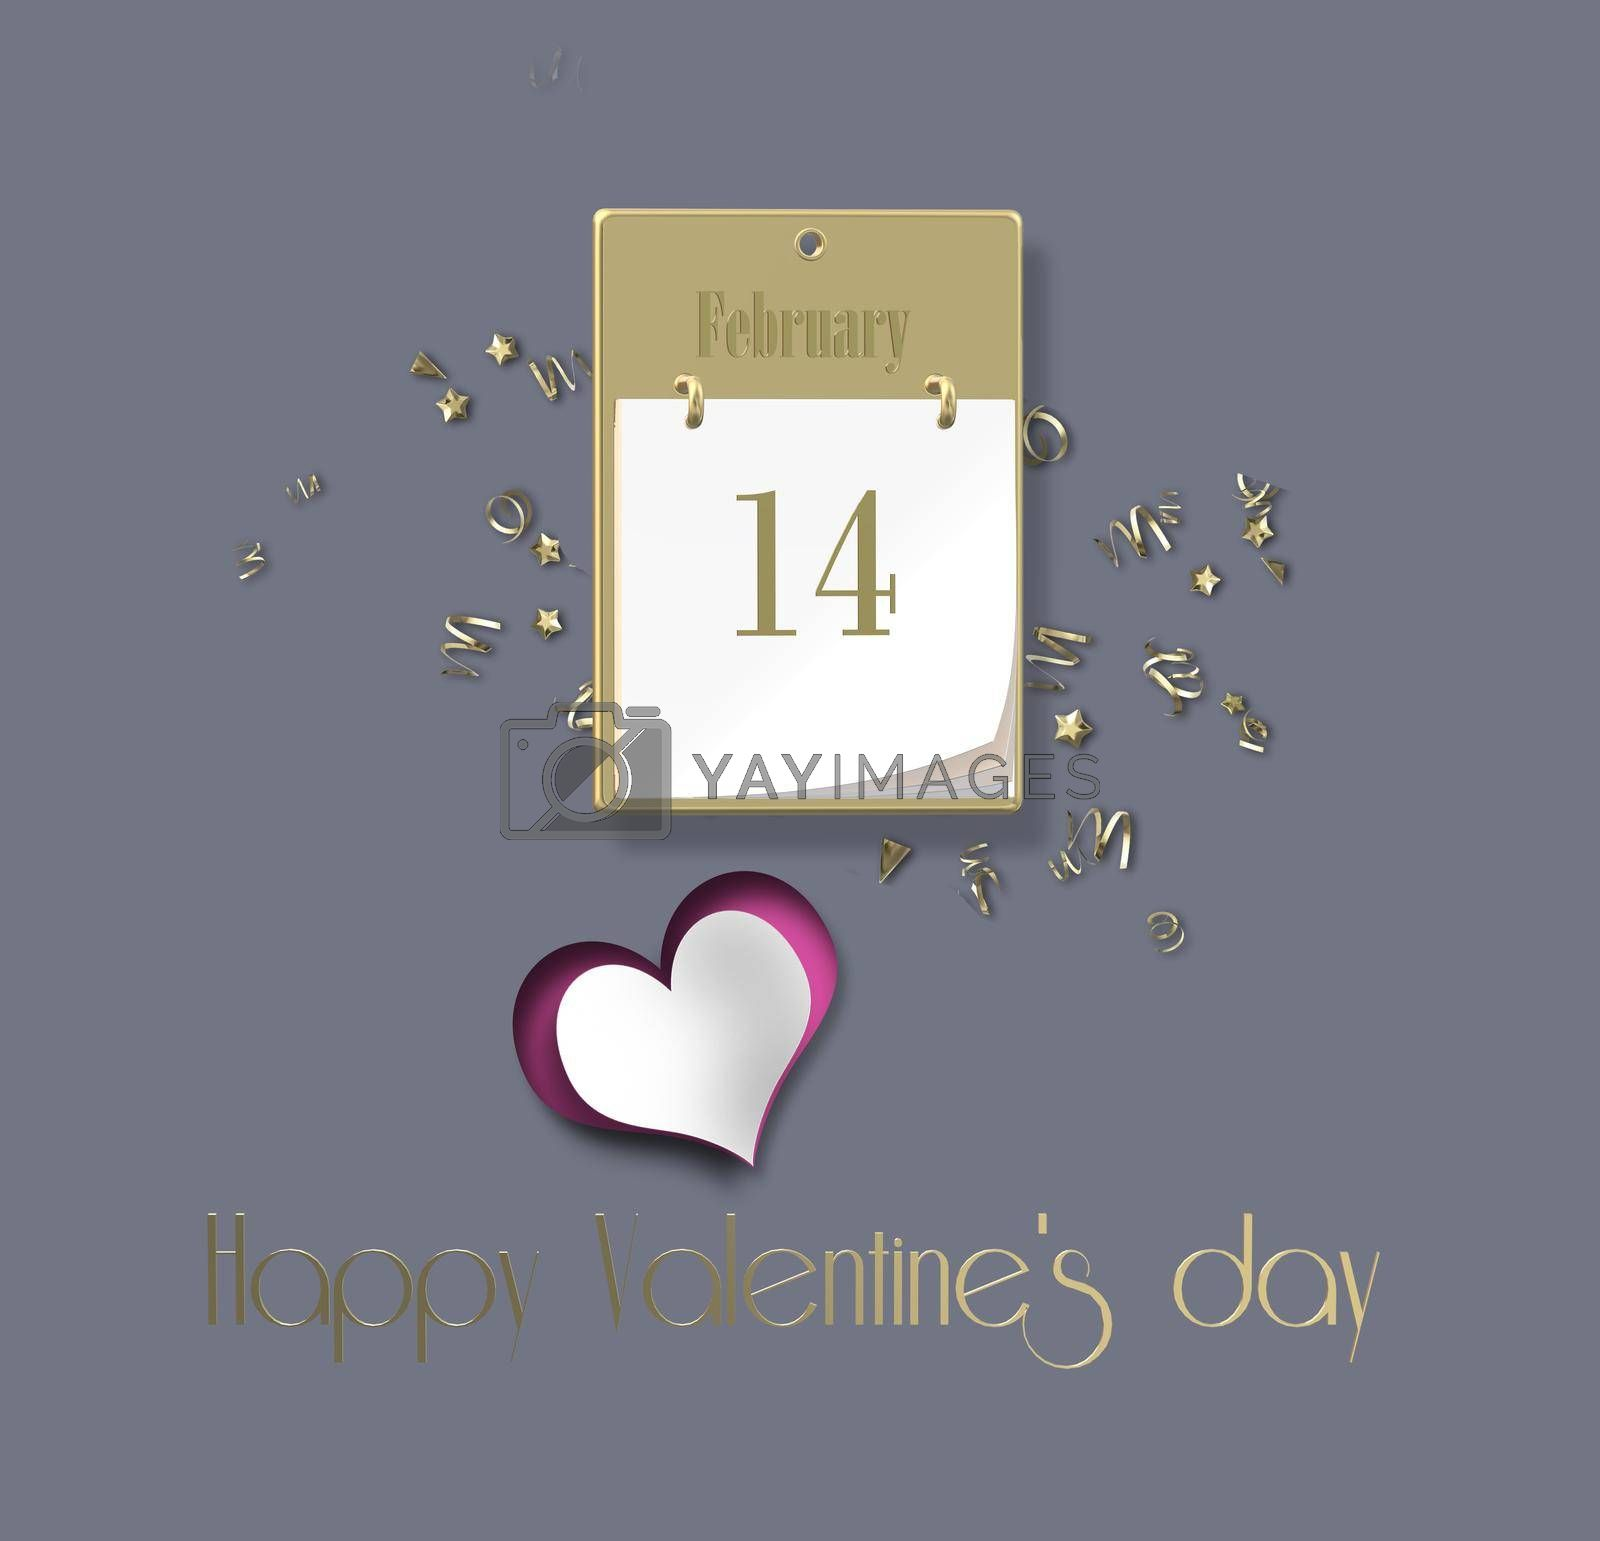 Valentines calendar 14 February. Open calendar 14 February. Gold text Happy Valentine's day. Planning, poster, brochure, card invitation. 3D rendering